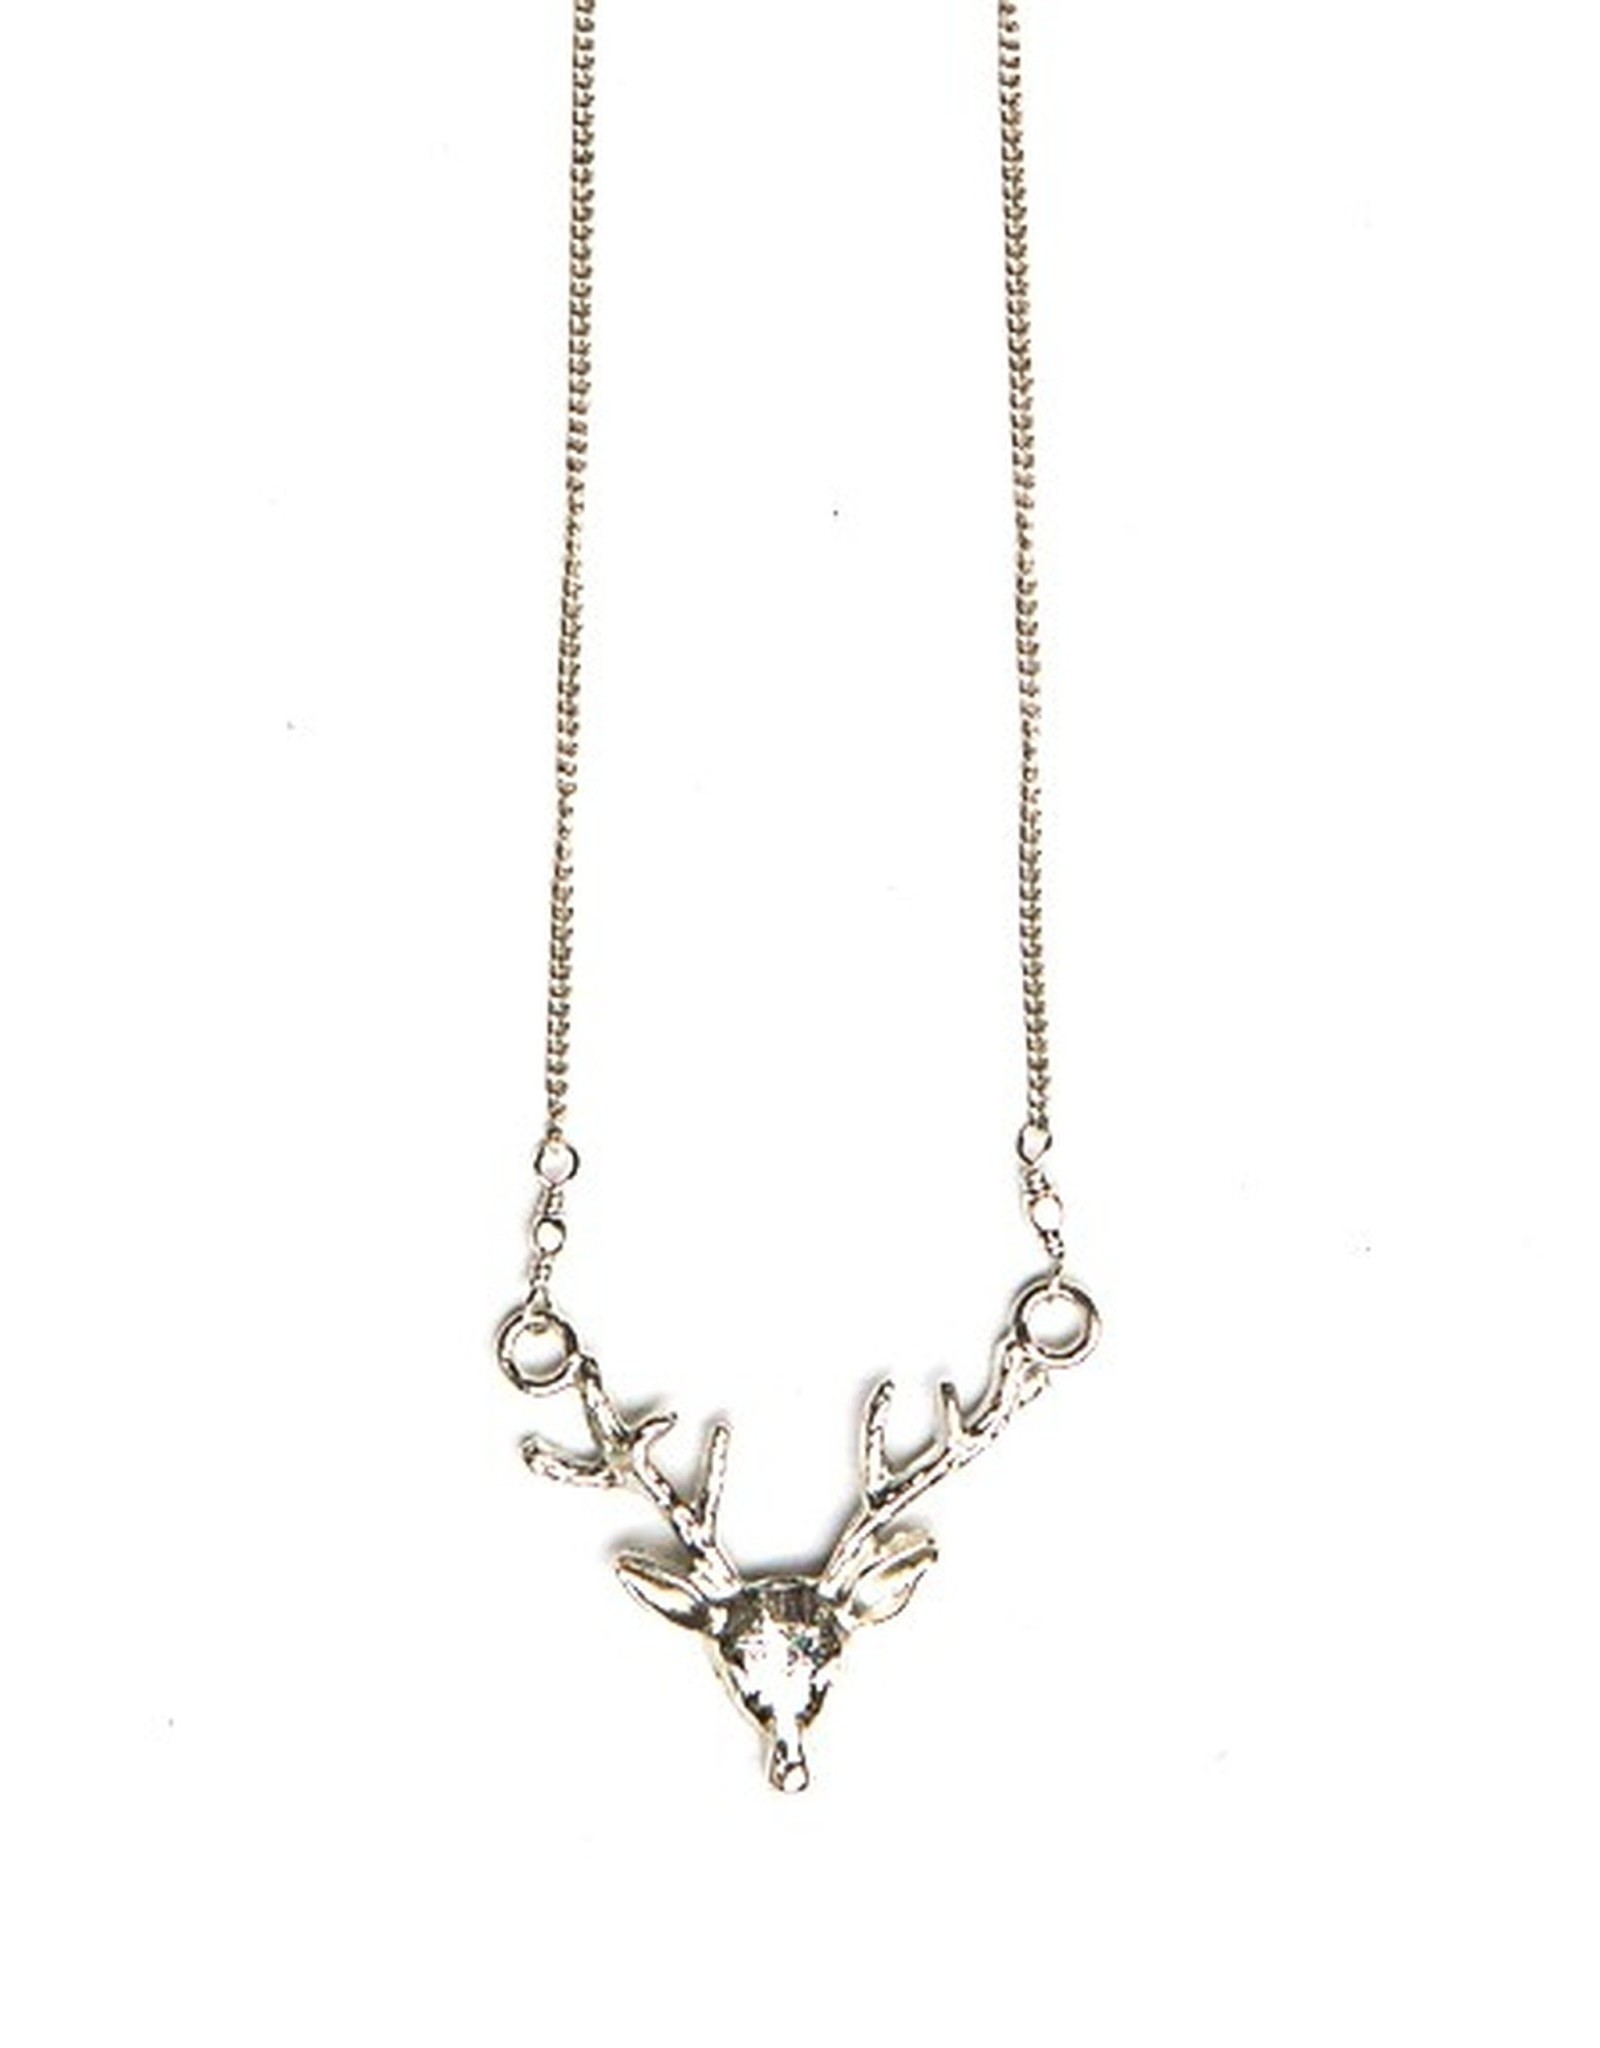 Fair Anita Antlers Necklace, Silver. India